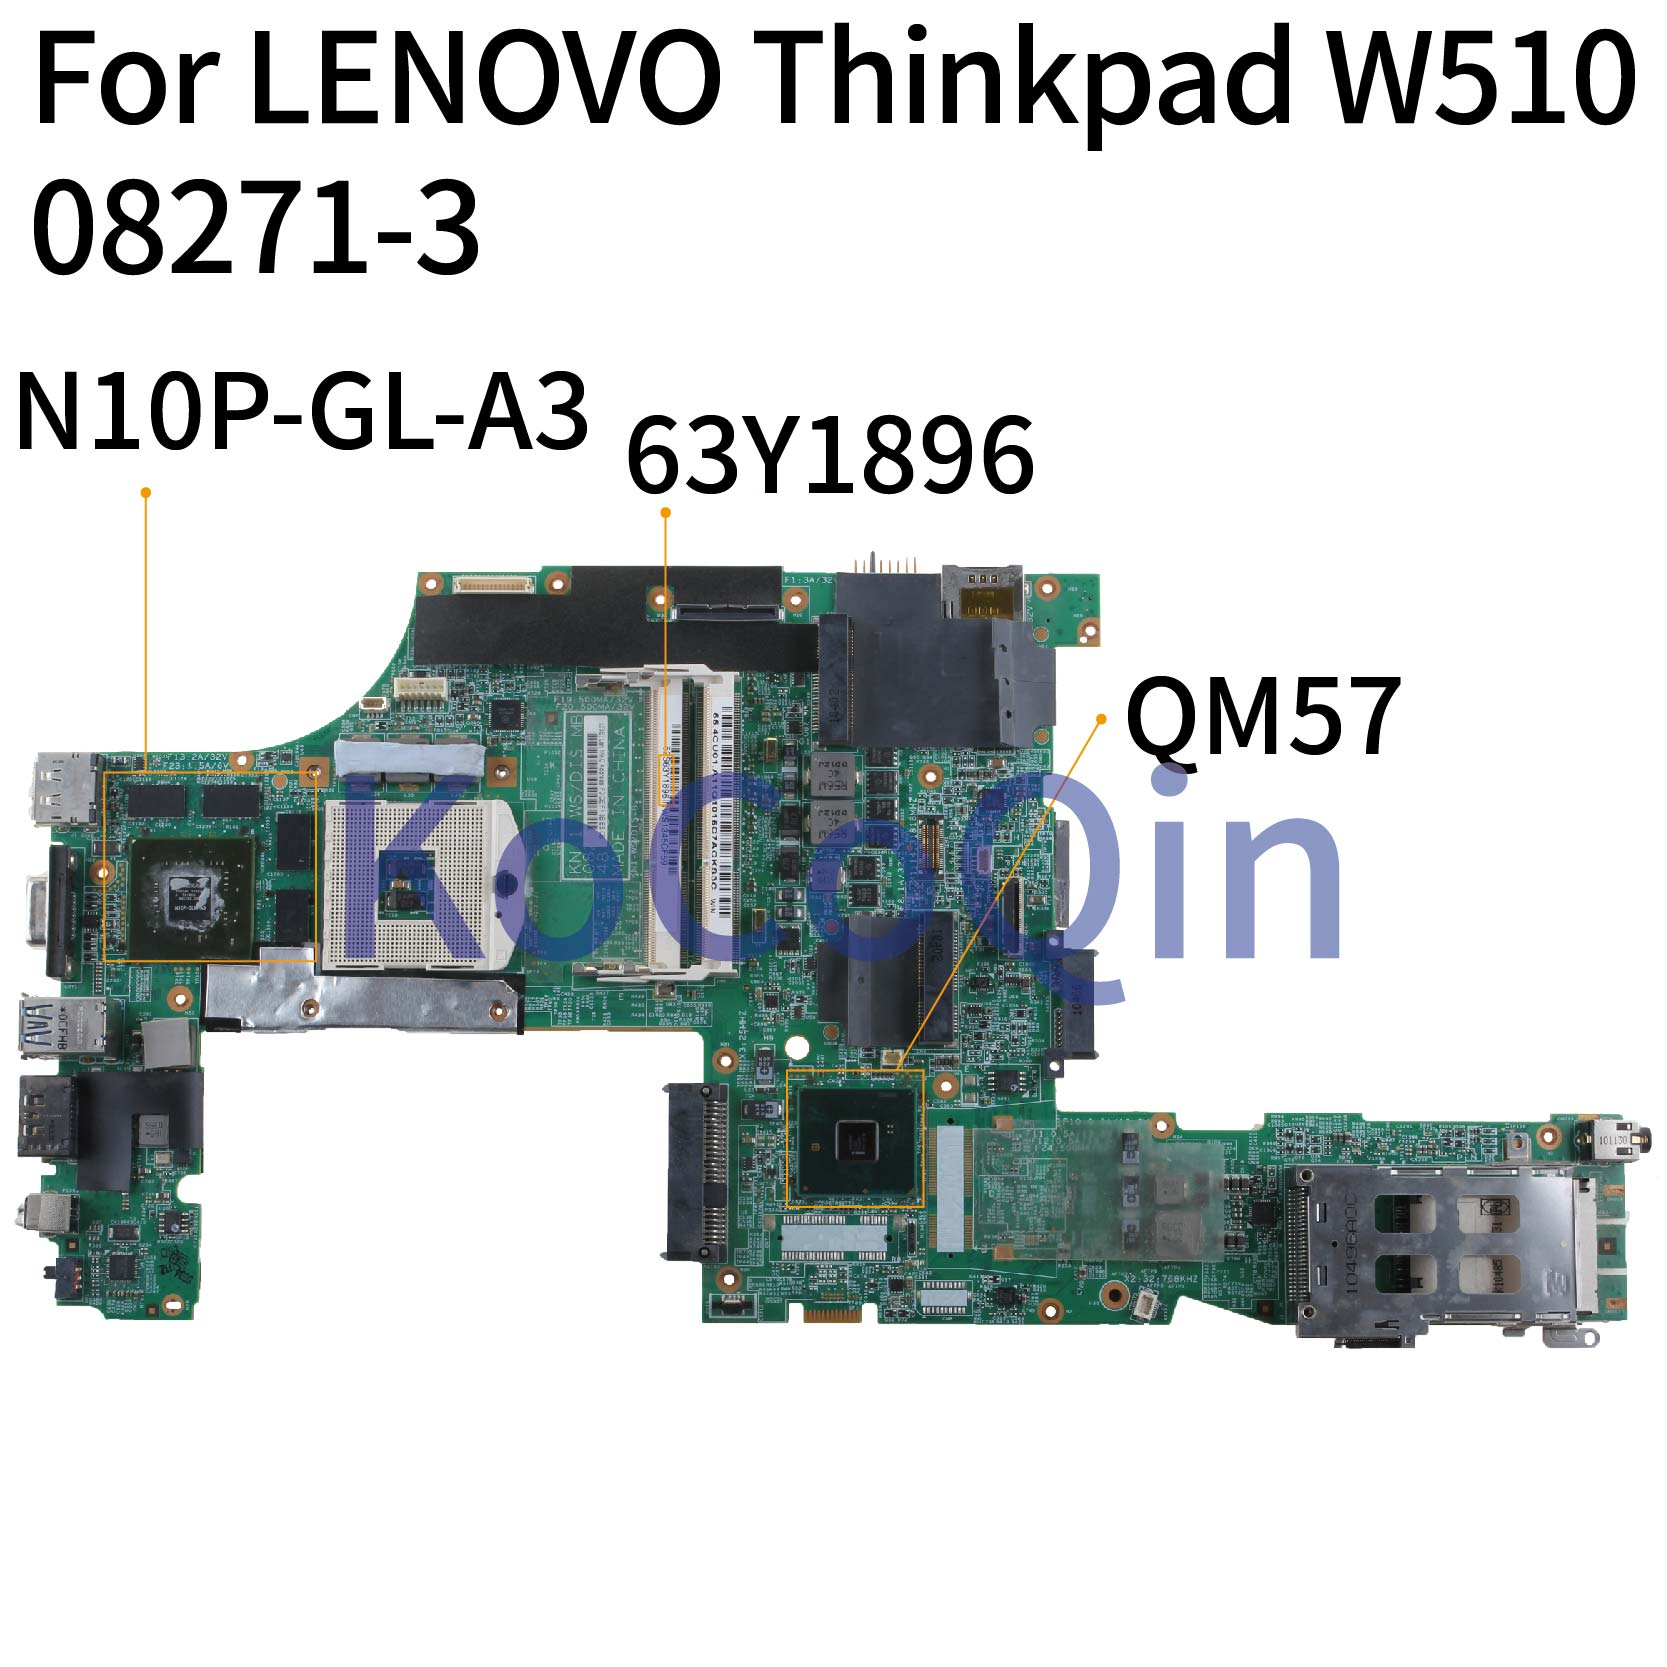 KoCoQin Laptop Motherboard For LENOVO Thinkpad W510 Mainboard 63Y1896 63Y1551 63Y2022 75Y4115 08271-3 48.4CU14.0 QM57 N10P-GL-A3